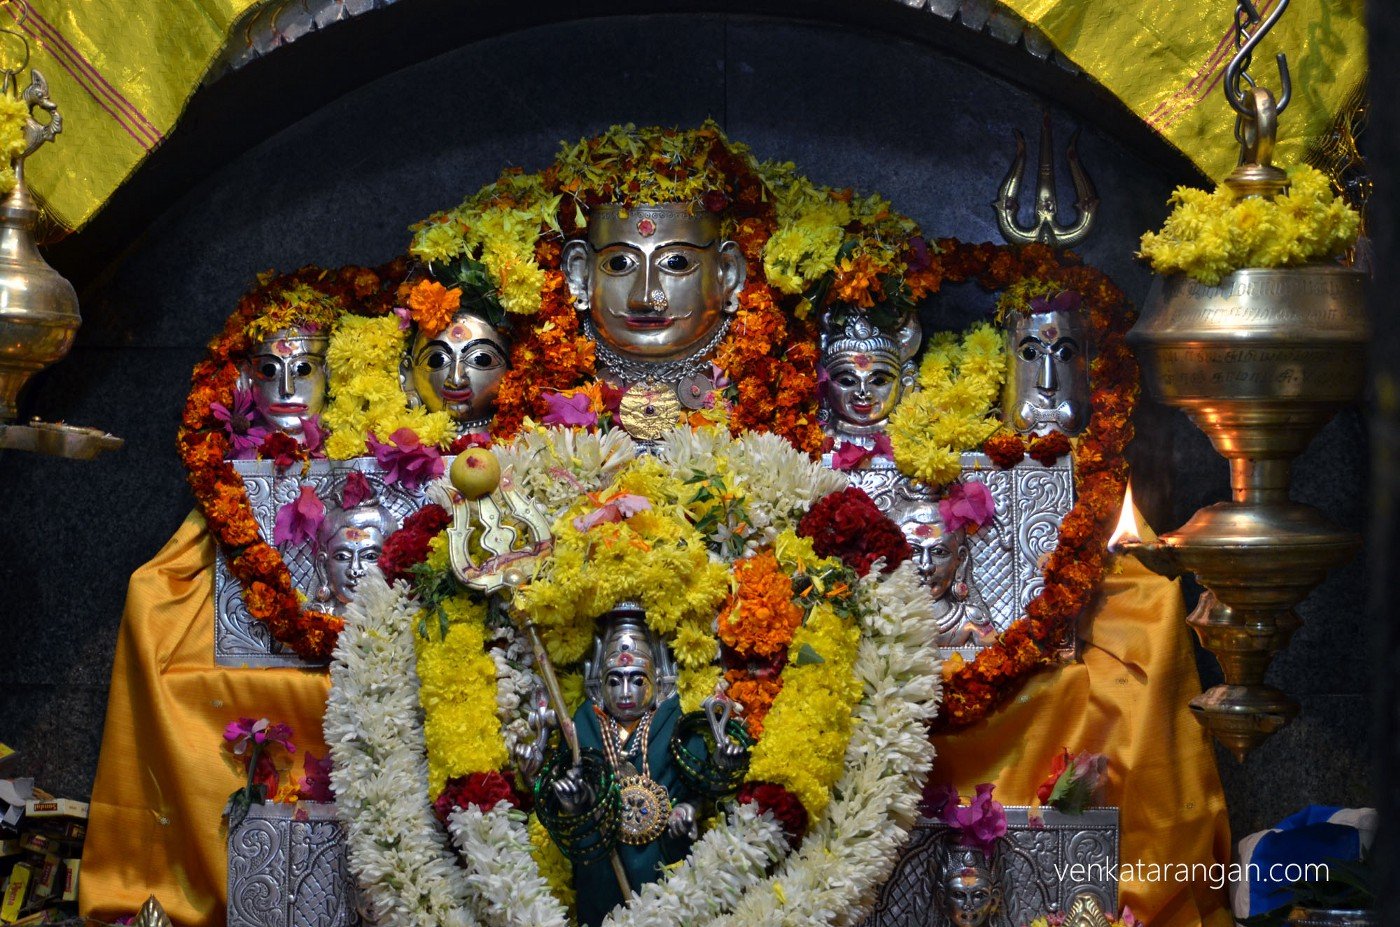 Dazzling view of Goddess Mariamman, presiding deity of a local temple, Bokapuram